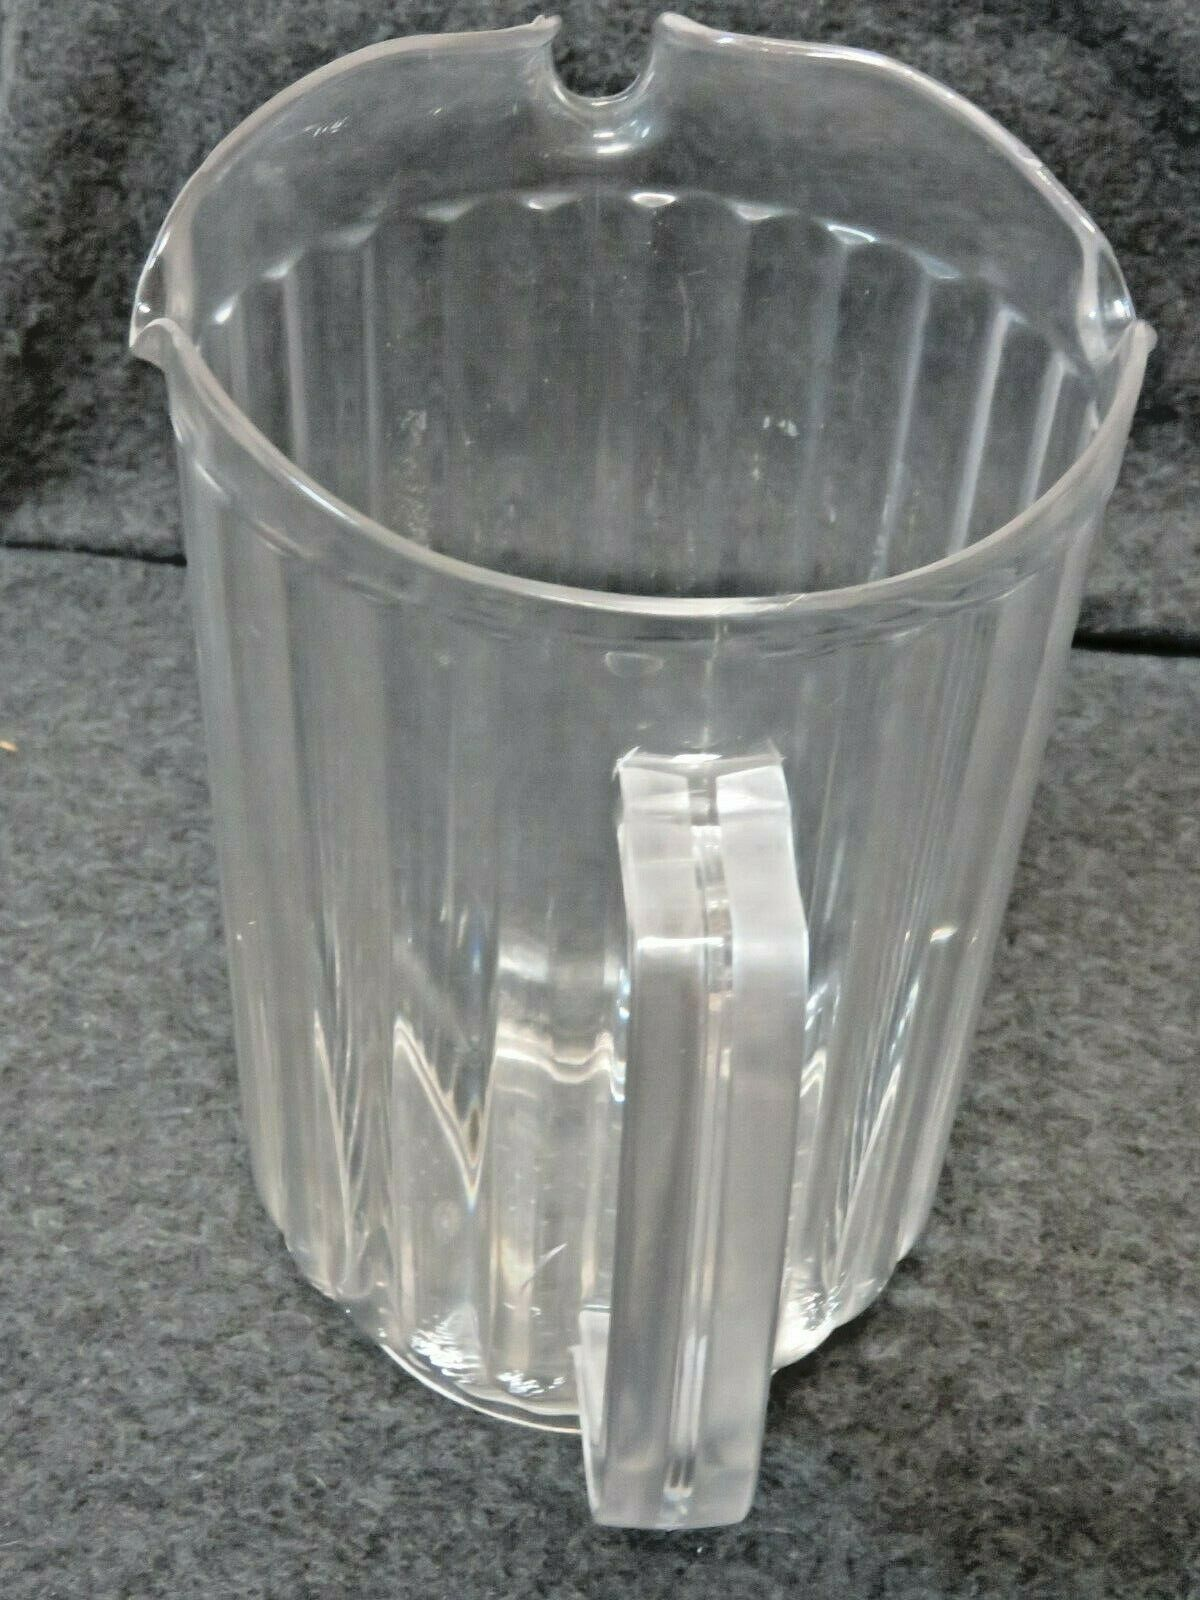 Lot of 4 Bakers Chefs Restaurant Commercial 60oz Clear Plastic Pitchers 3 Spouts